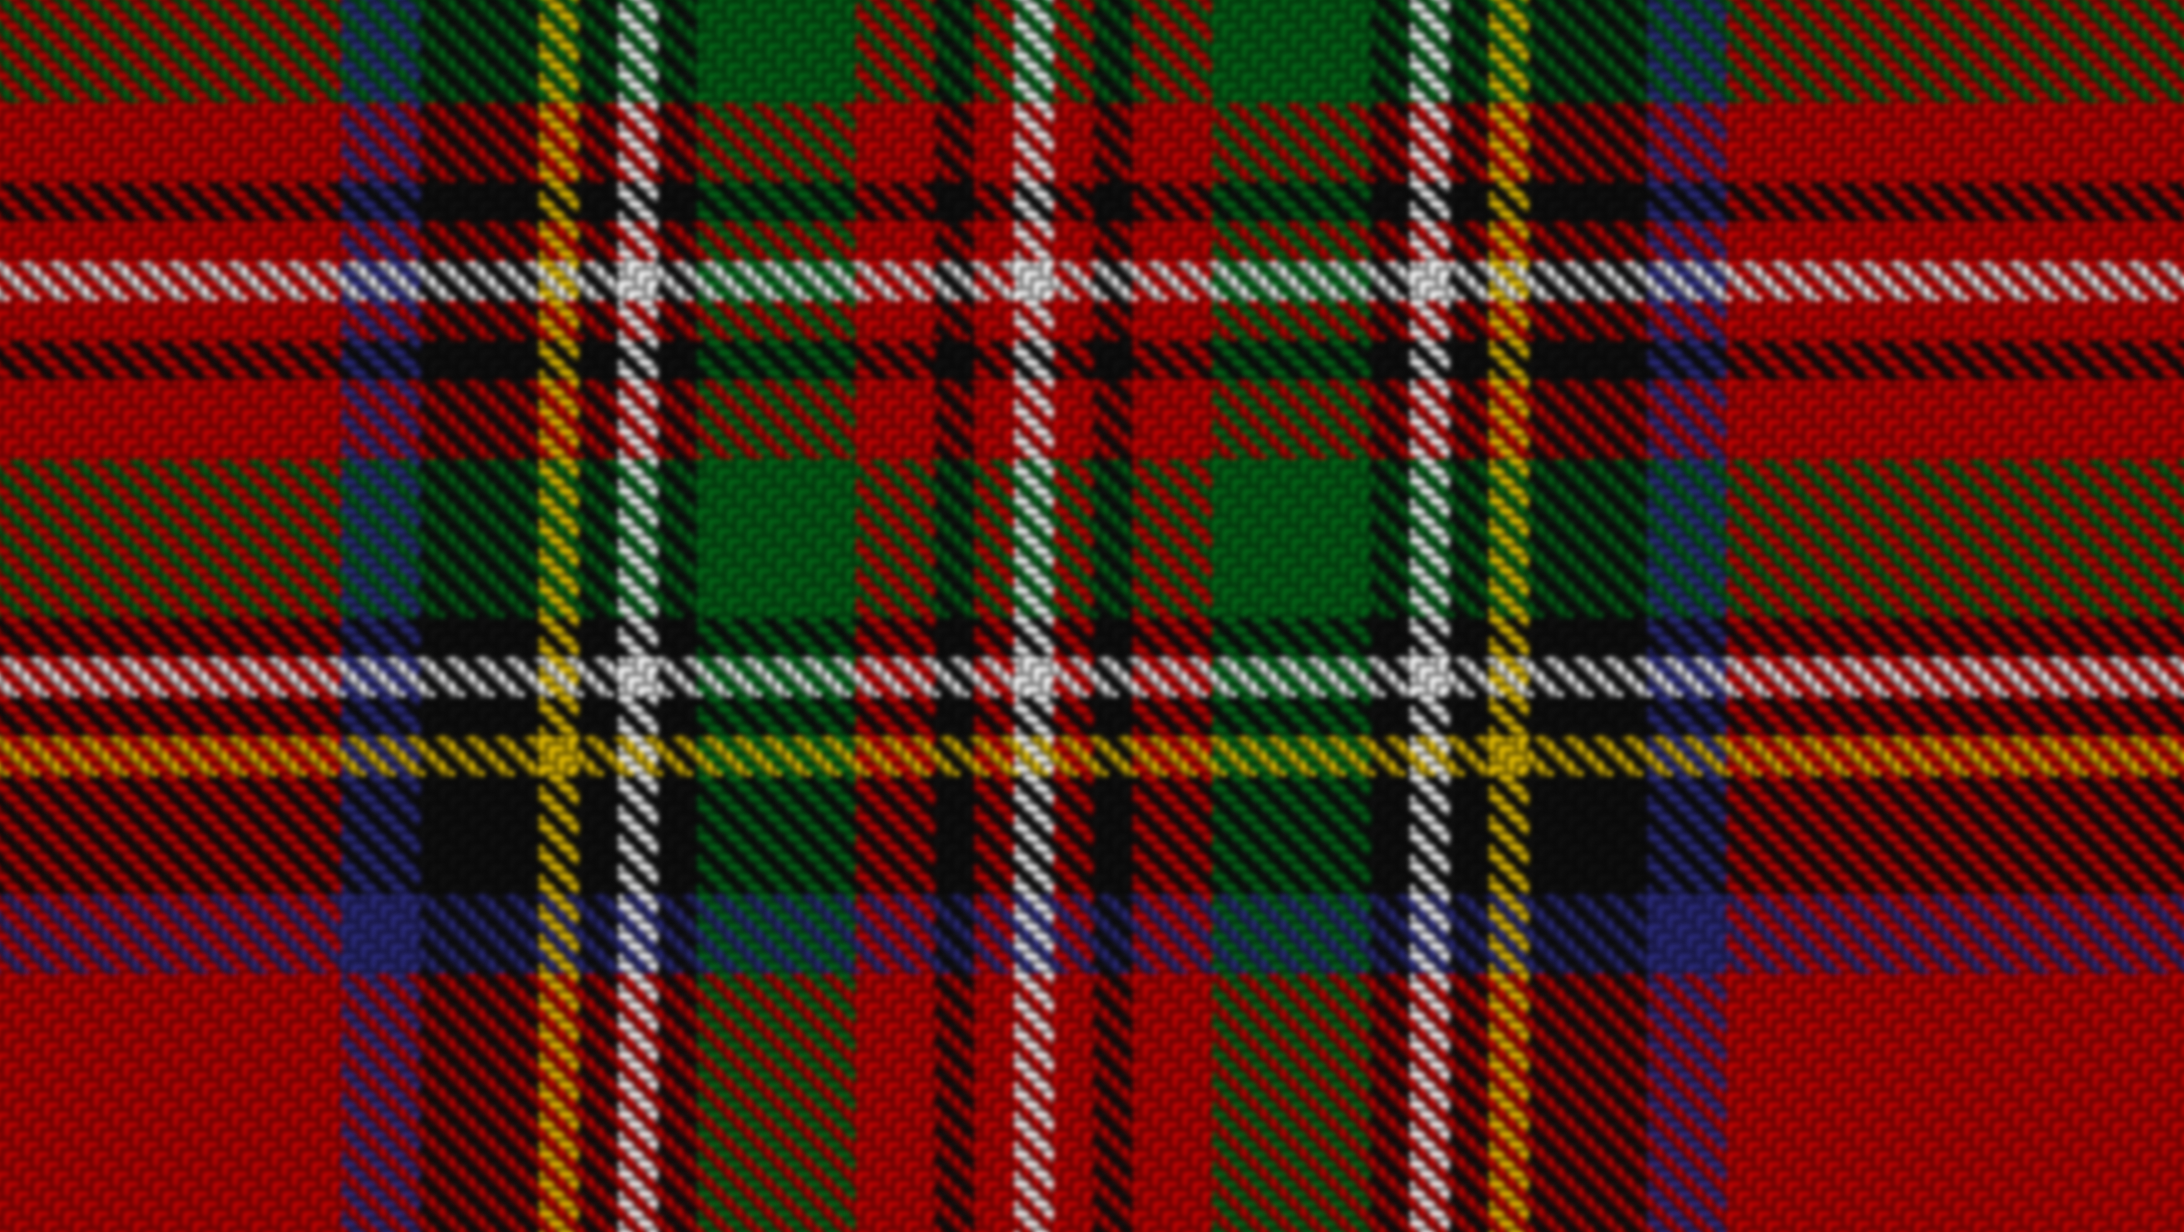 91a6eeb86 Royal Stewart is the iconic tartan. It's the Queen's tartan, representing a  line that runs from an 11th-century Breton nobleman through the royal  family.